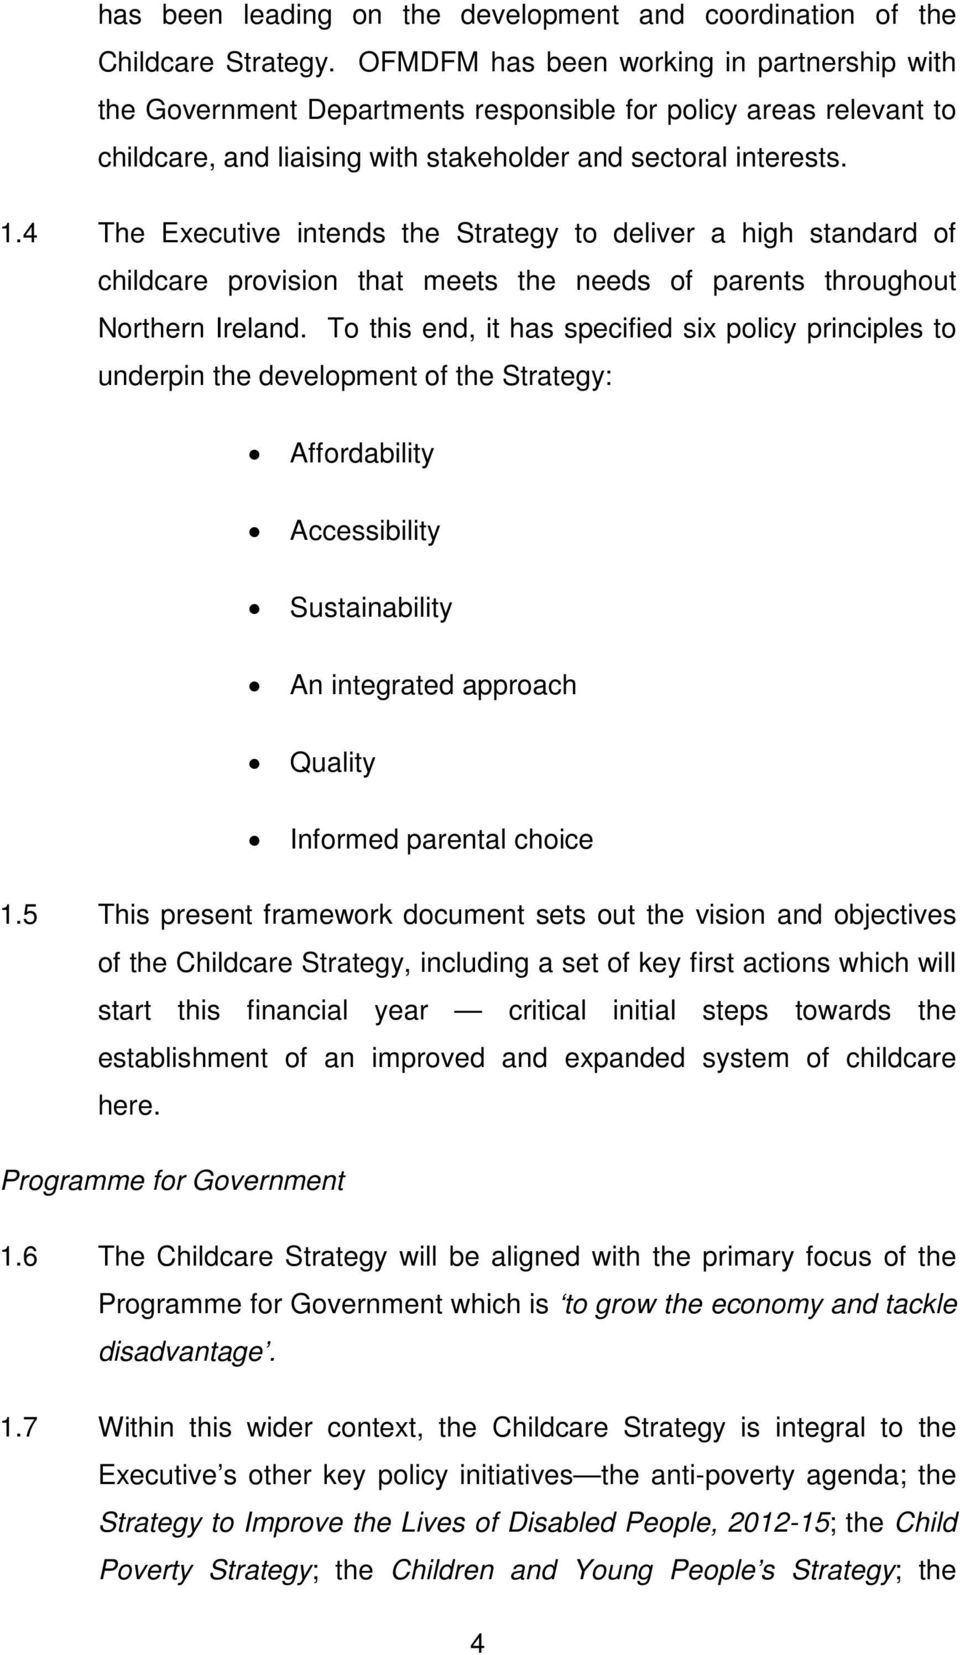 4 The Executive intends the Strategy to deliver a high standard of childcare provision that meets the needs of parents throughout Northern Ireland.